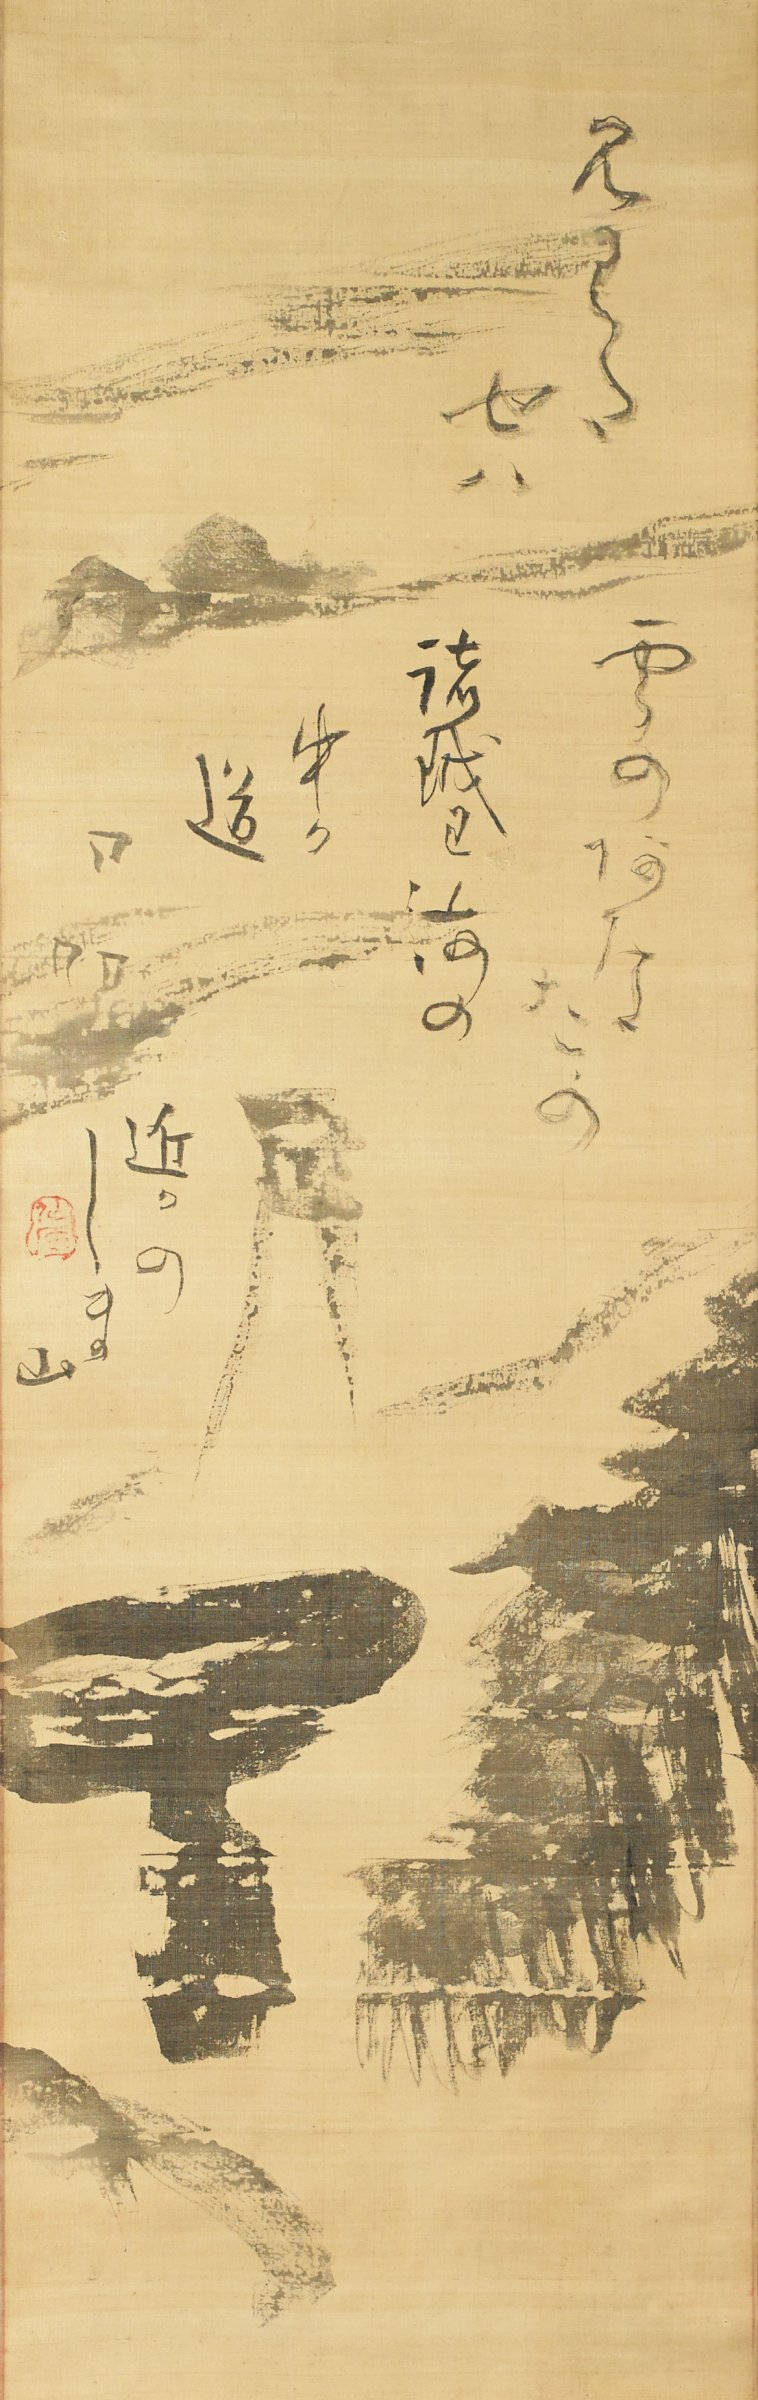 Hanging scroll with inscription:Looking out overBeyond the cloudsThe country of various boundaries (China)The mid path of the seaThe nearest of the island mountains.